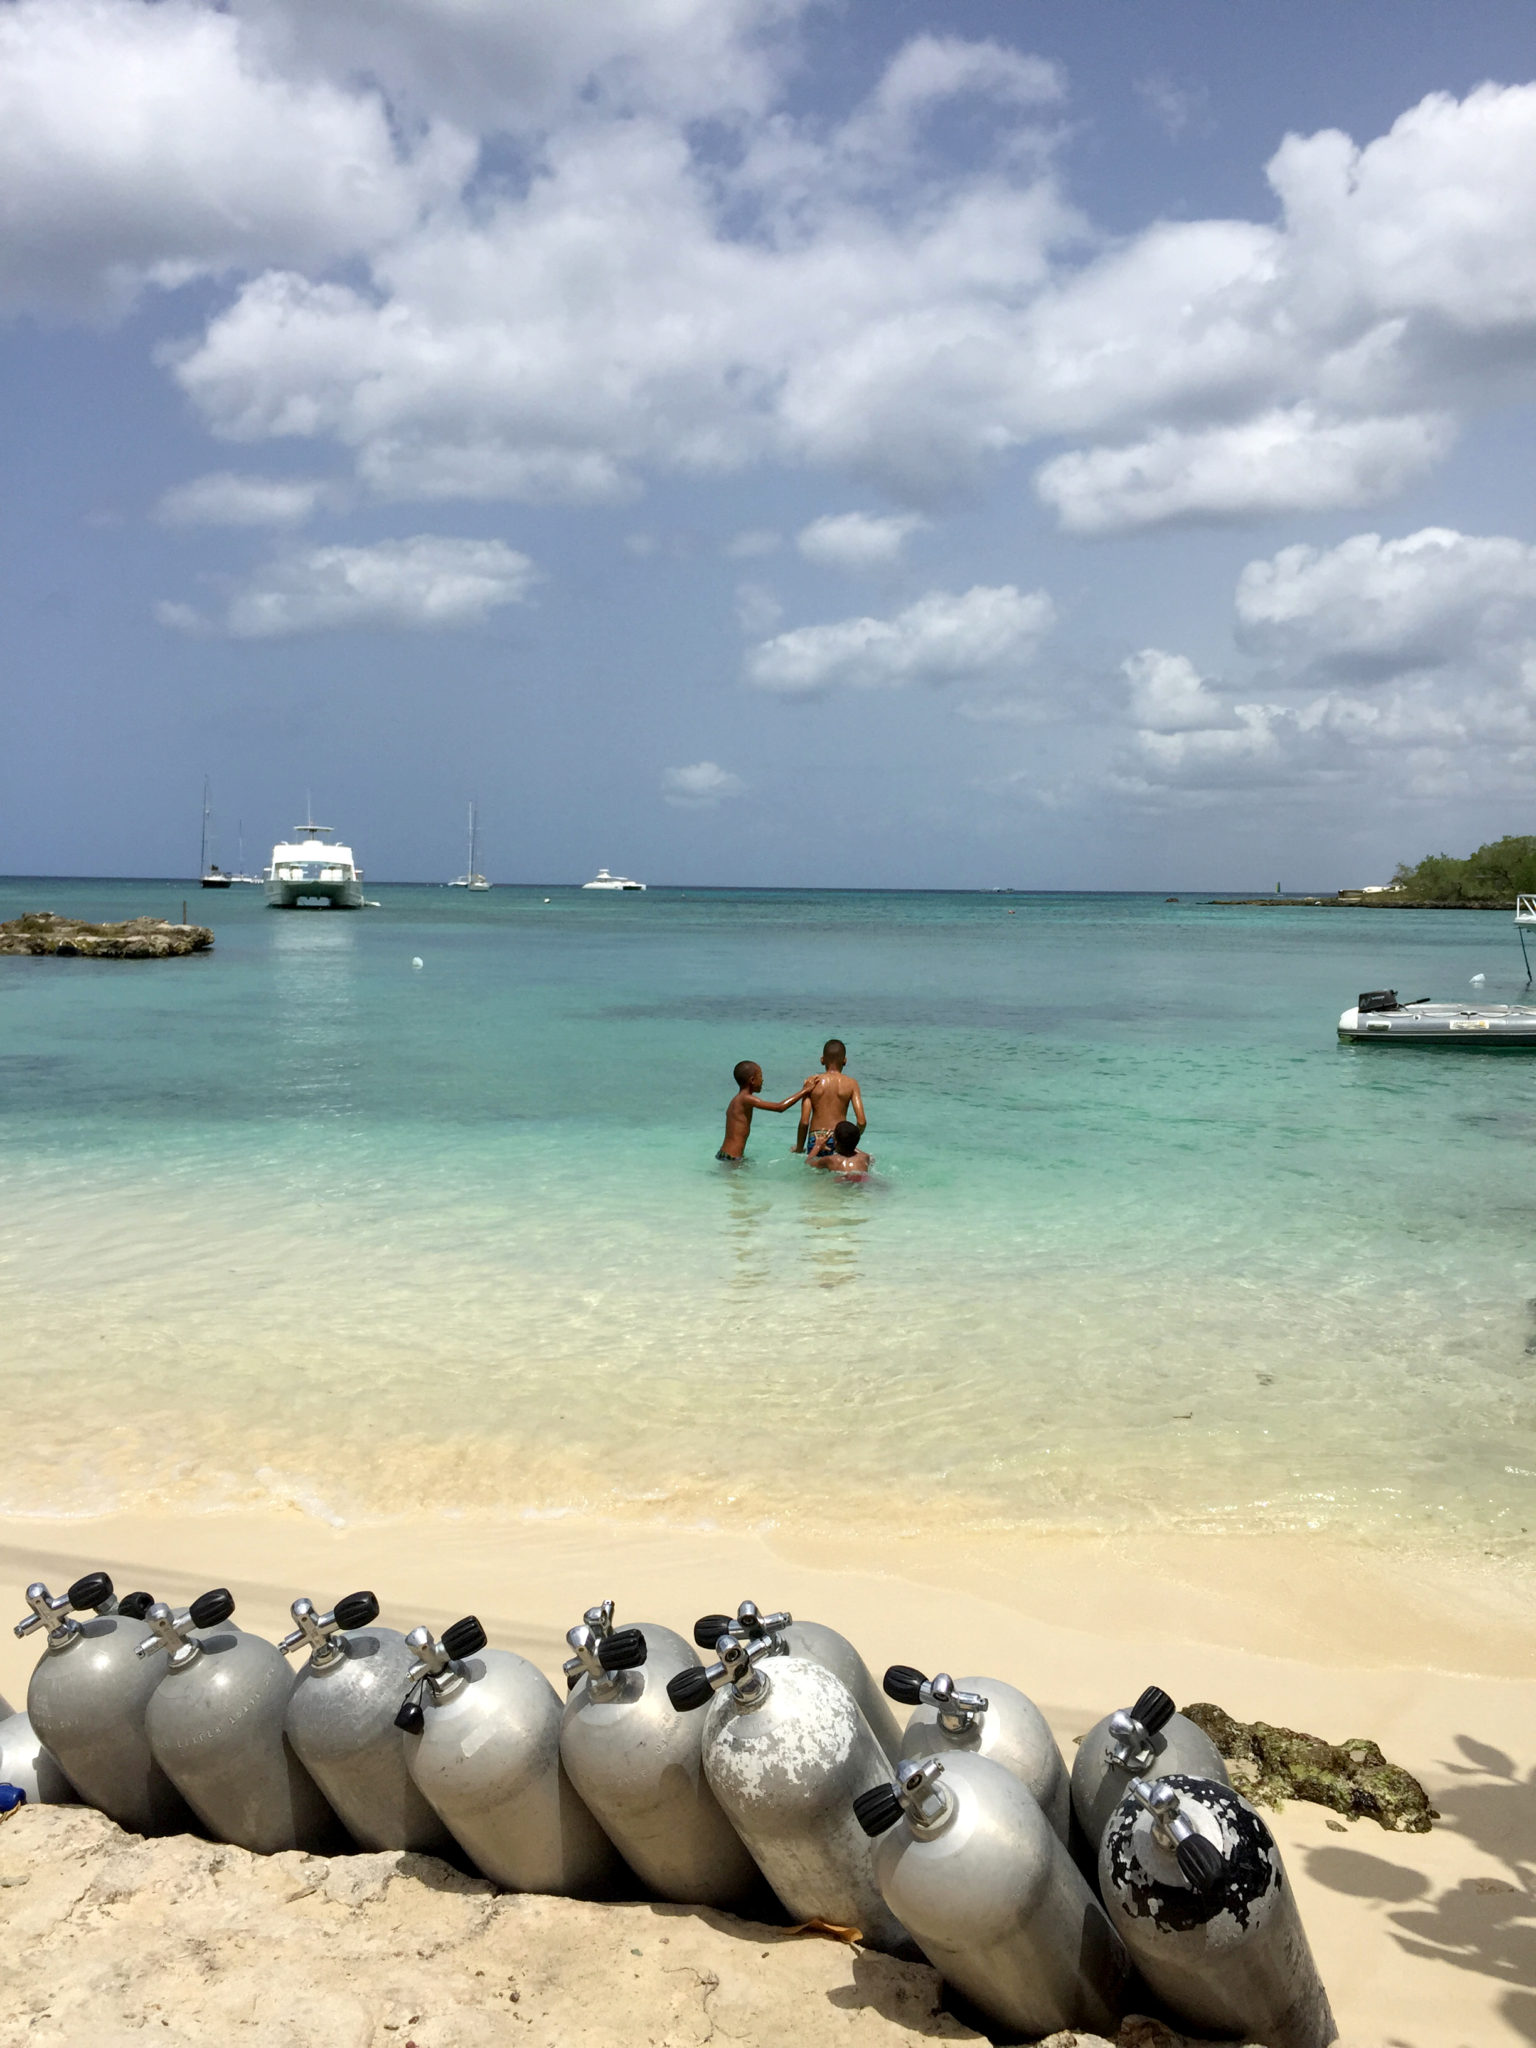 Republique_dominicaine_roadtrip_bayahibe_embarcadere_plongee_bouteilles